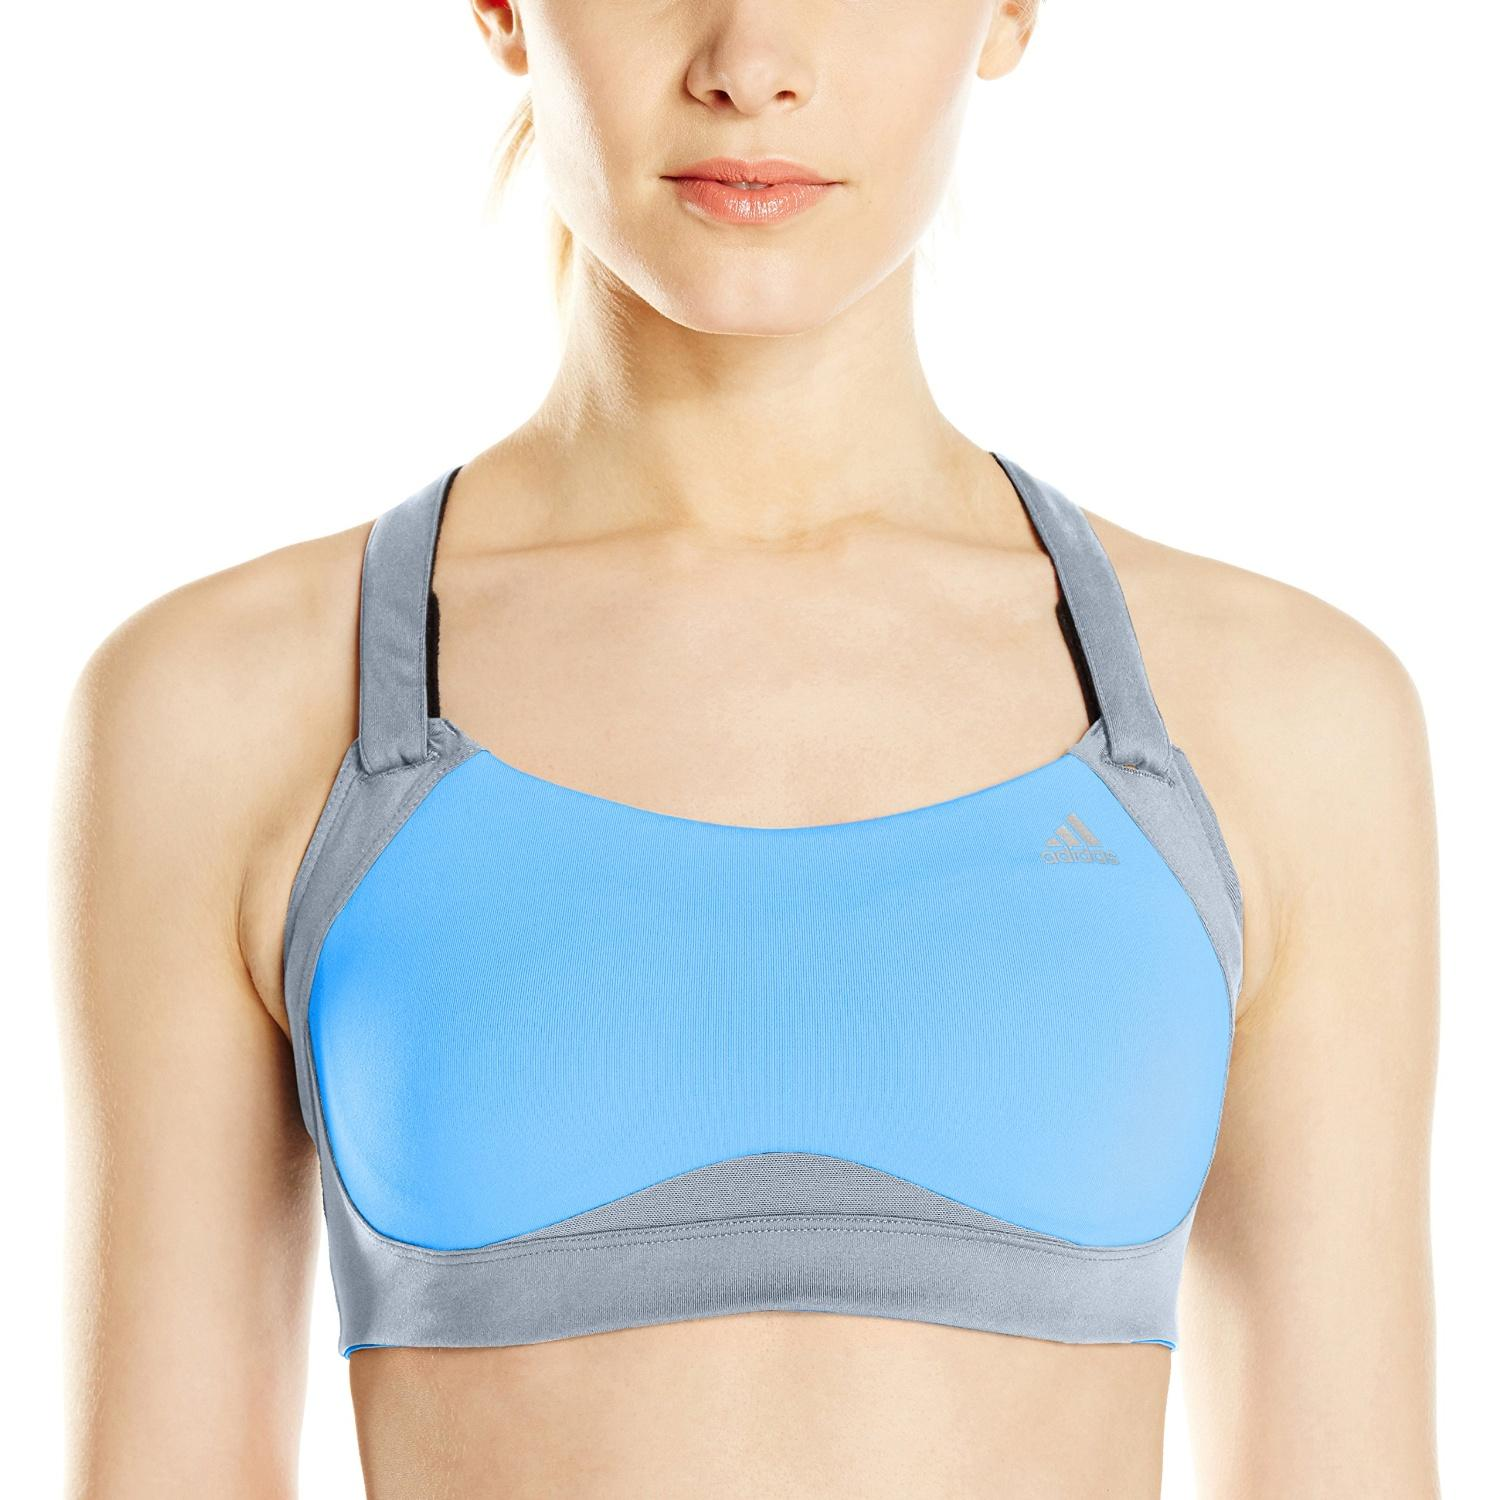 From $20.58 adidas Performance Women's High-Impact Bra